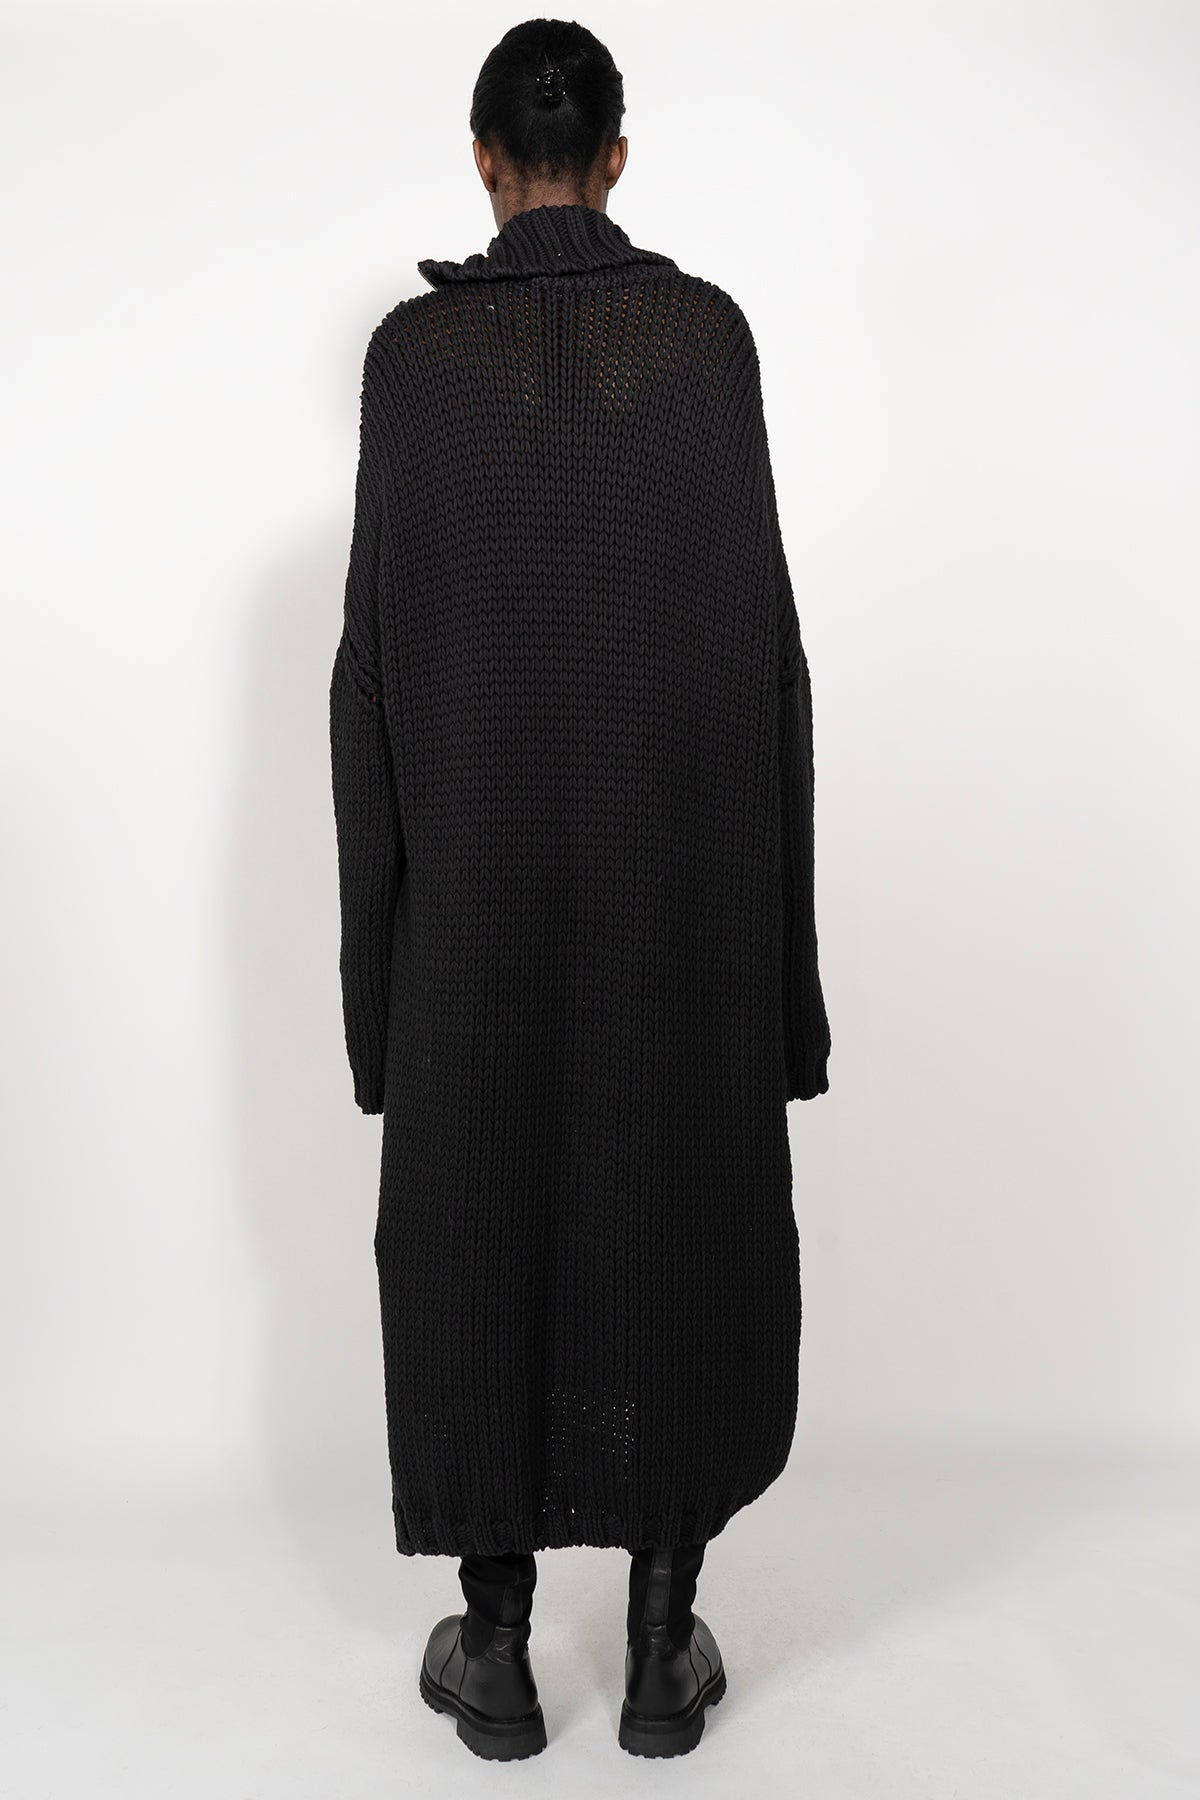 THICK WEIGHT KNIT IN BLACK